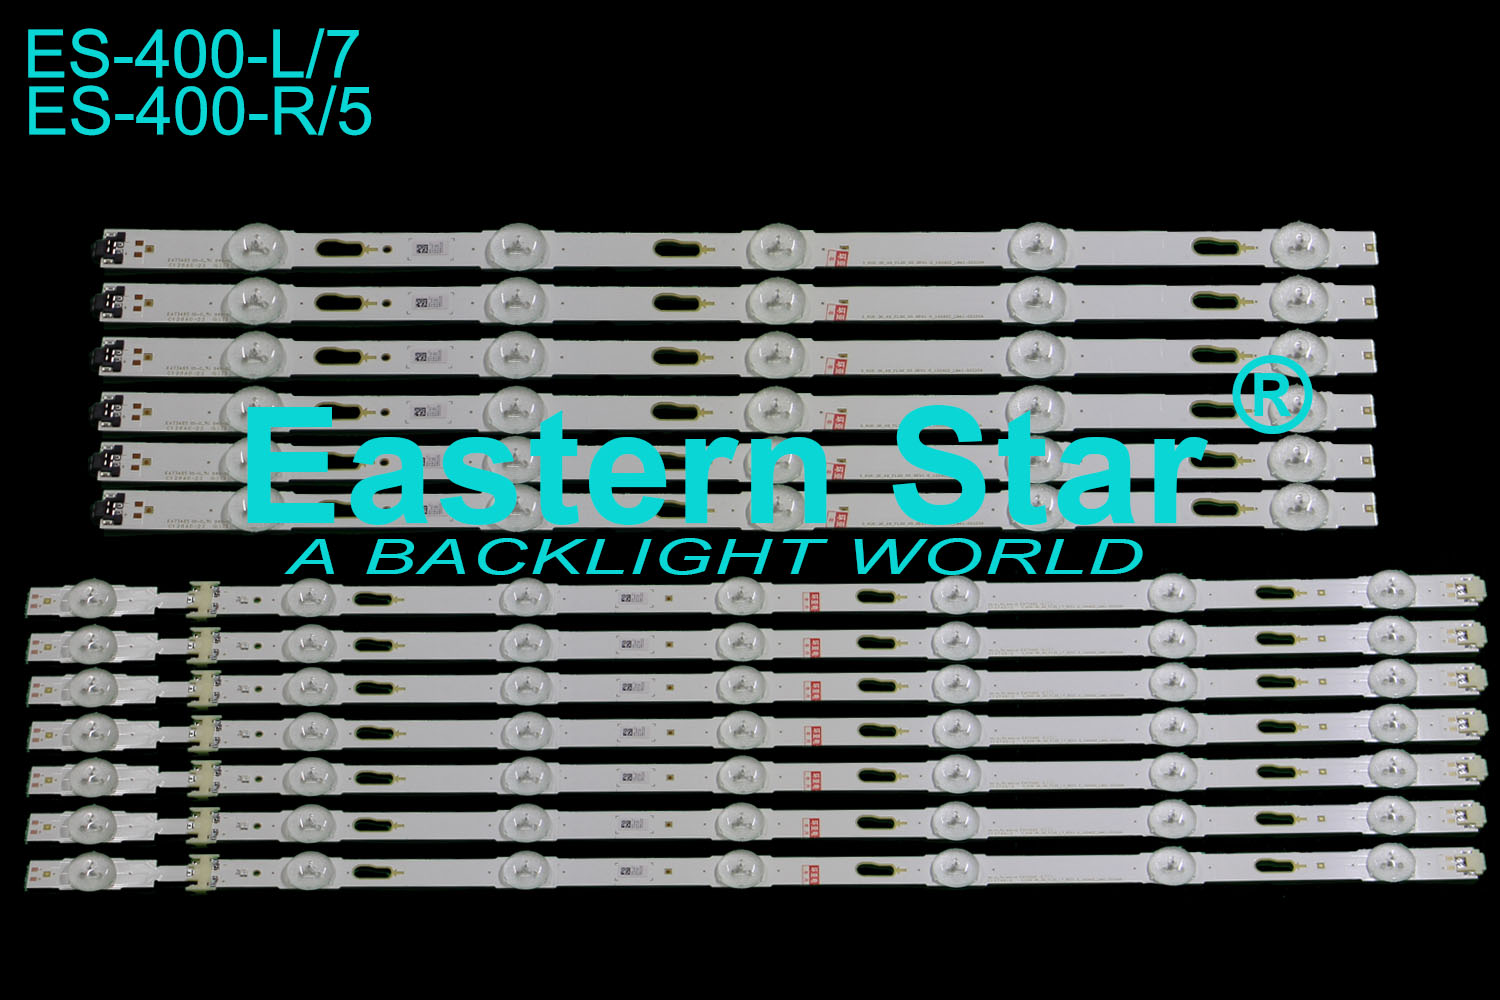 ES-400 LED TV Backlight use for SAMSUNG 49'' S_KU6.3K_49_FL30_L7/R5_REV1.0_160402_LM41-00334/5A LED STRIPS(12)